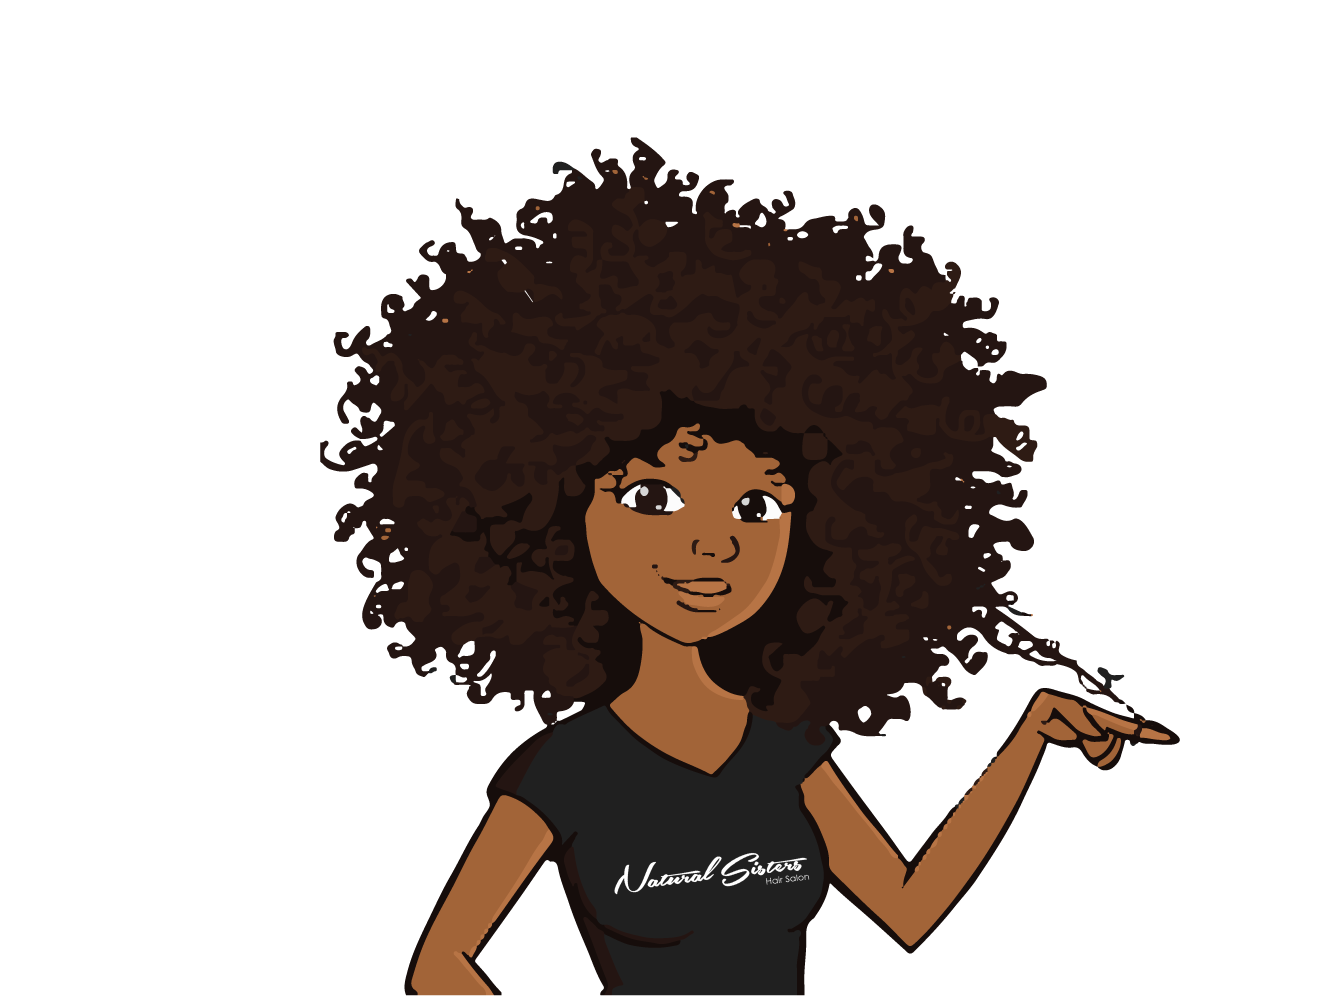 Clipart pf animated black woman at hair salon clipart library Natural Sisters – Hair Salon clipart library